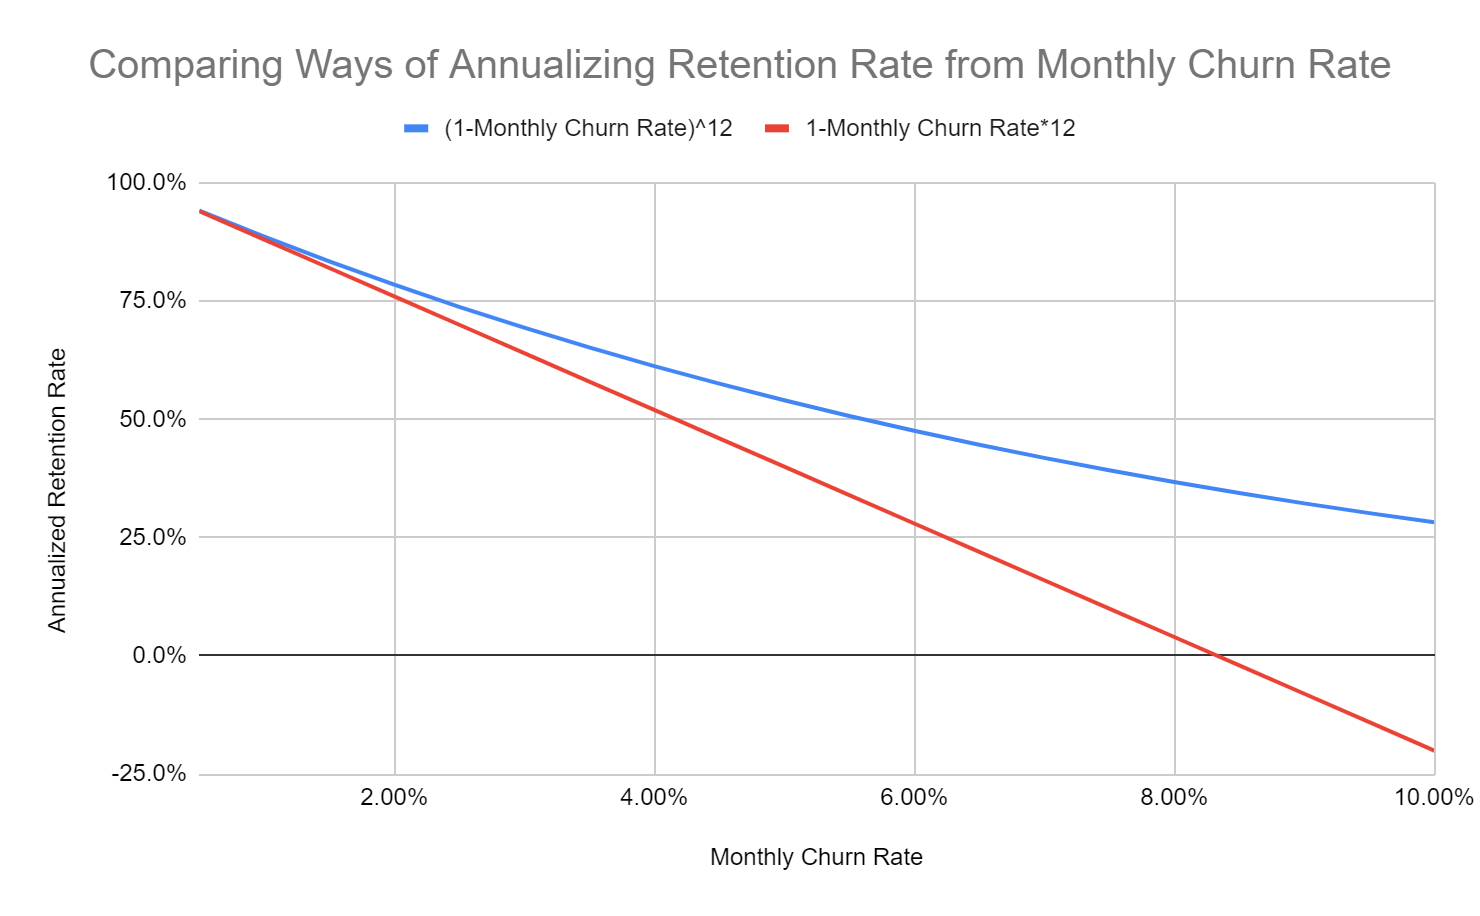 Difference between quick and accurate ways of extrapolating churn rates across time periods.